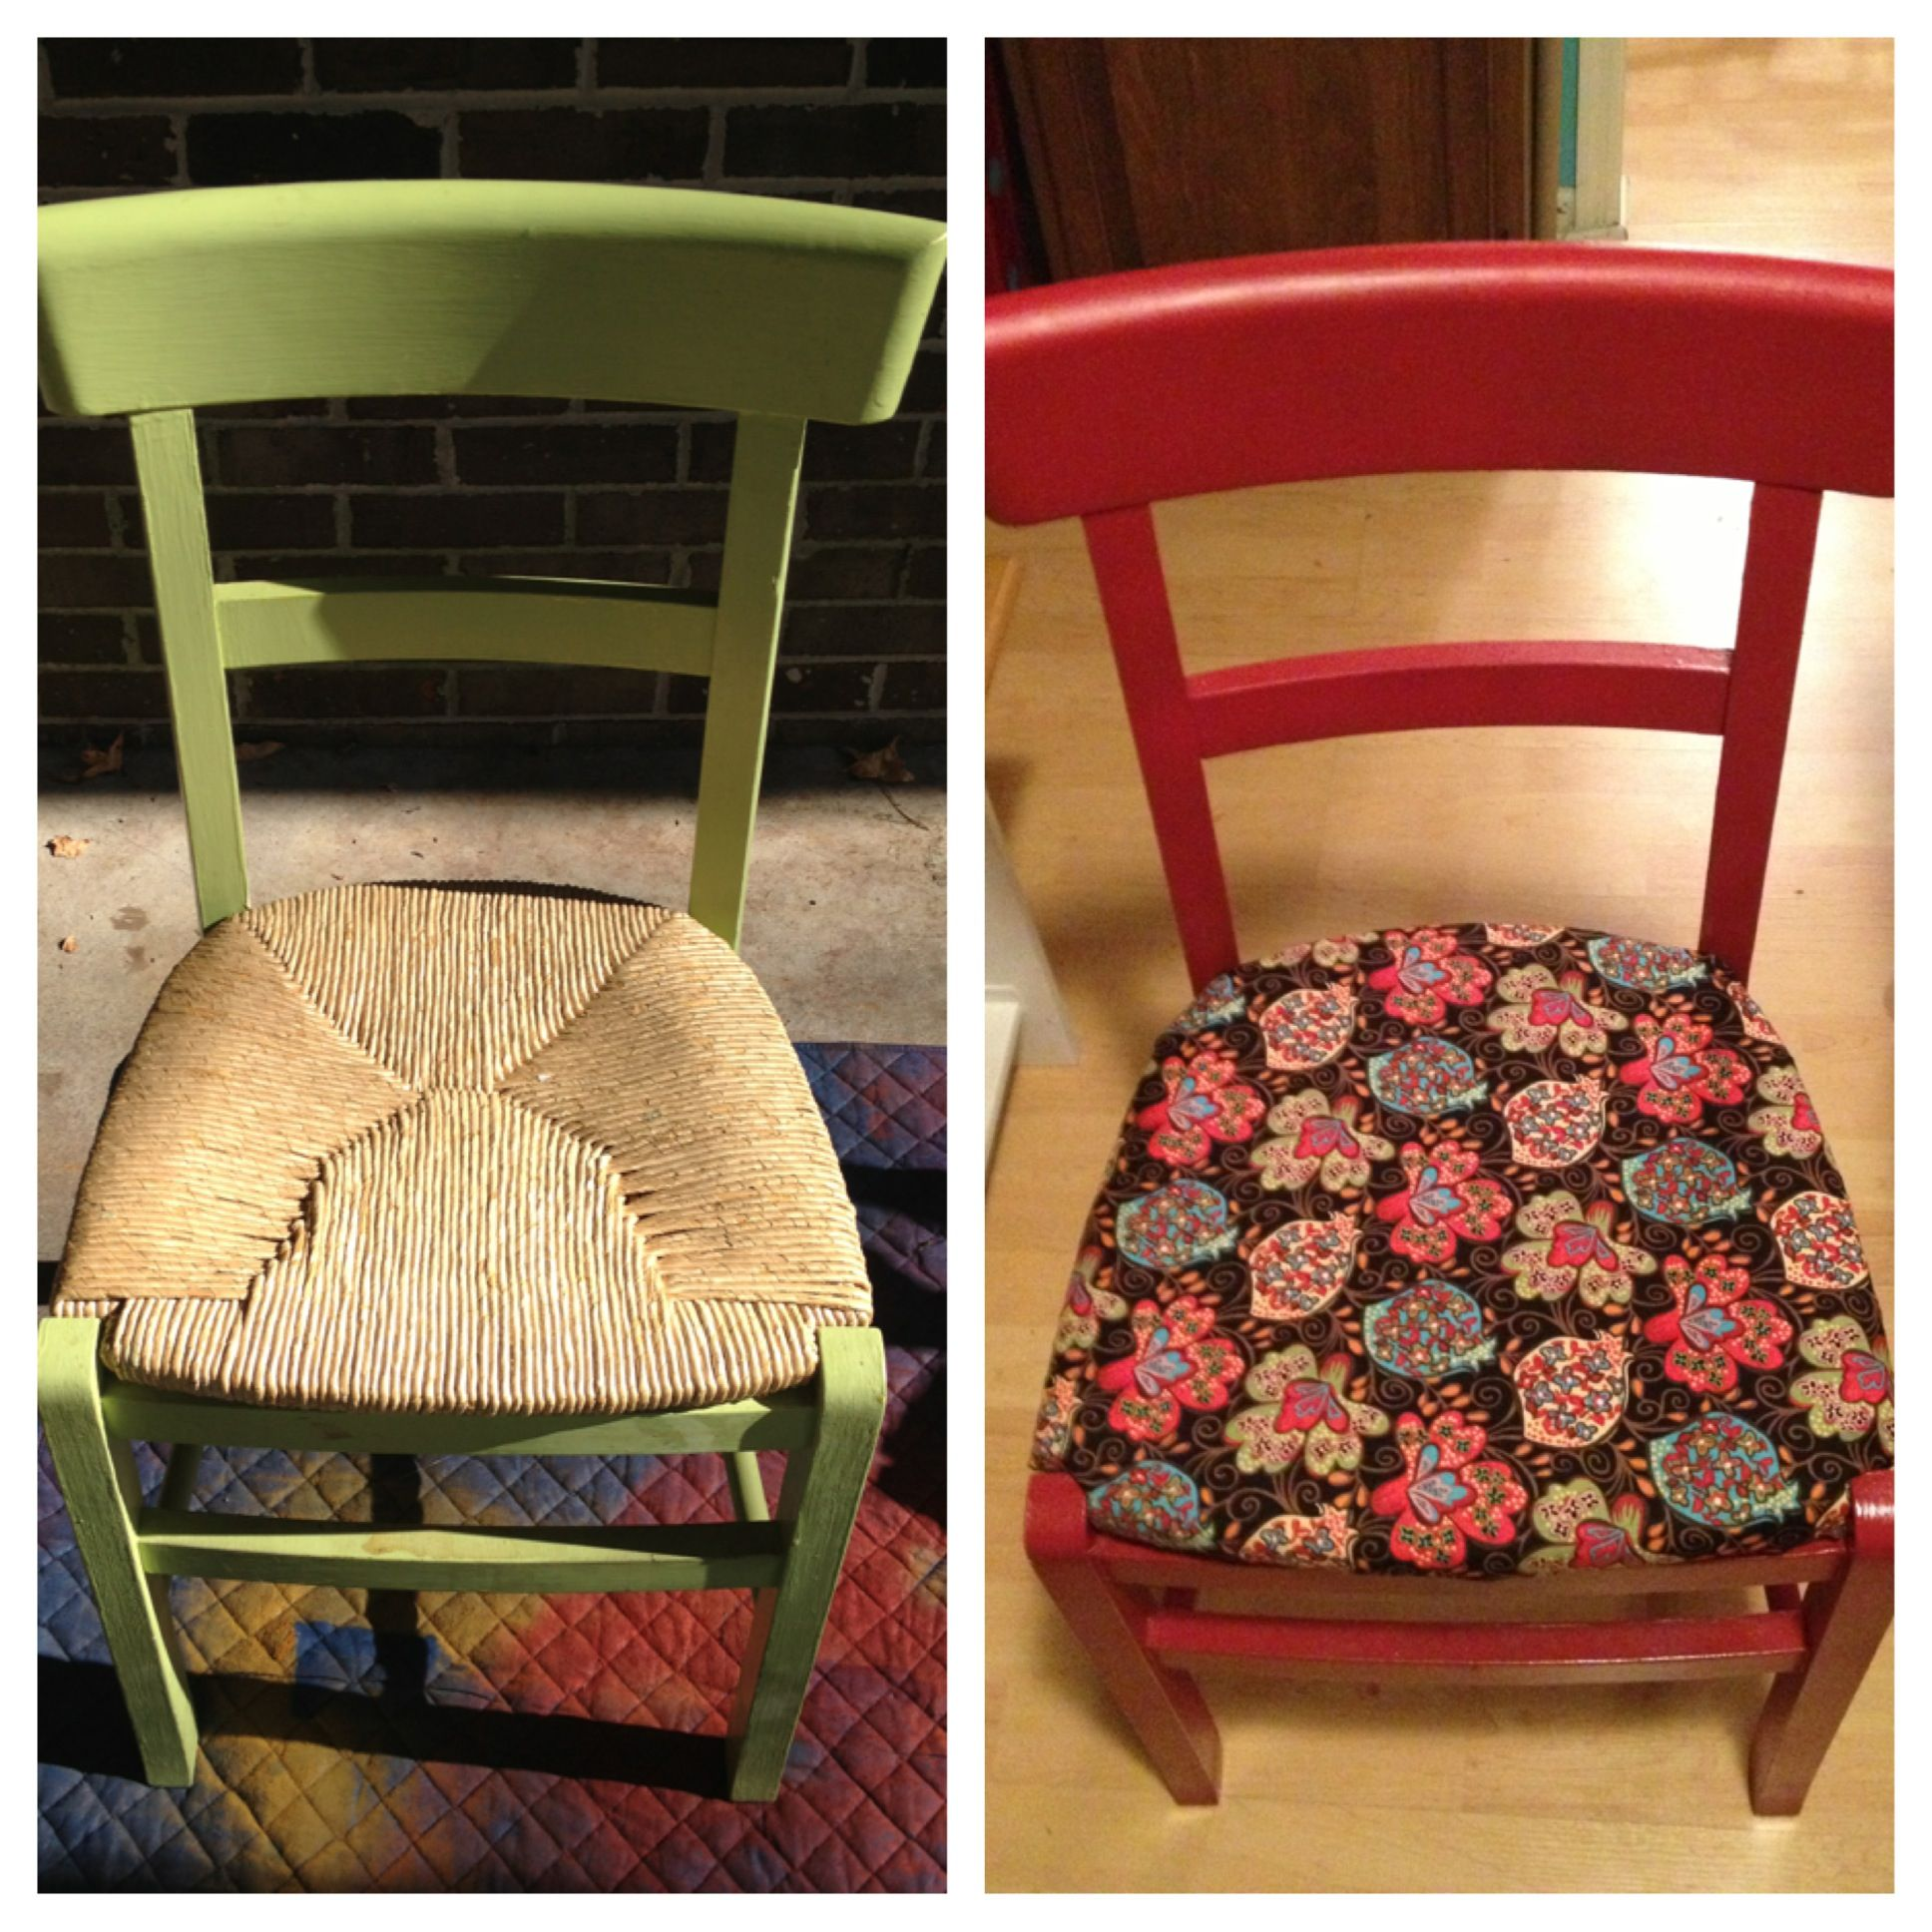 Best 25 Birthday Chair Ideas On Pinterest: Best 25+ Kitchen Chair Redo Ideas On Pinterest